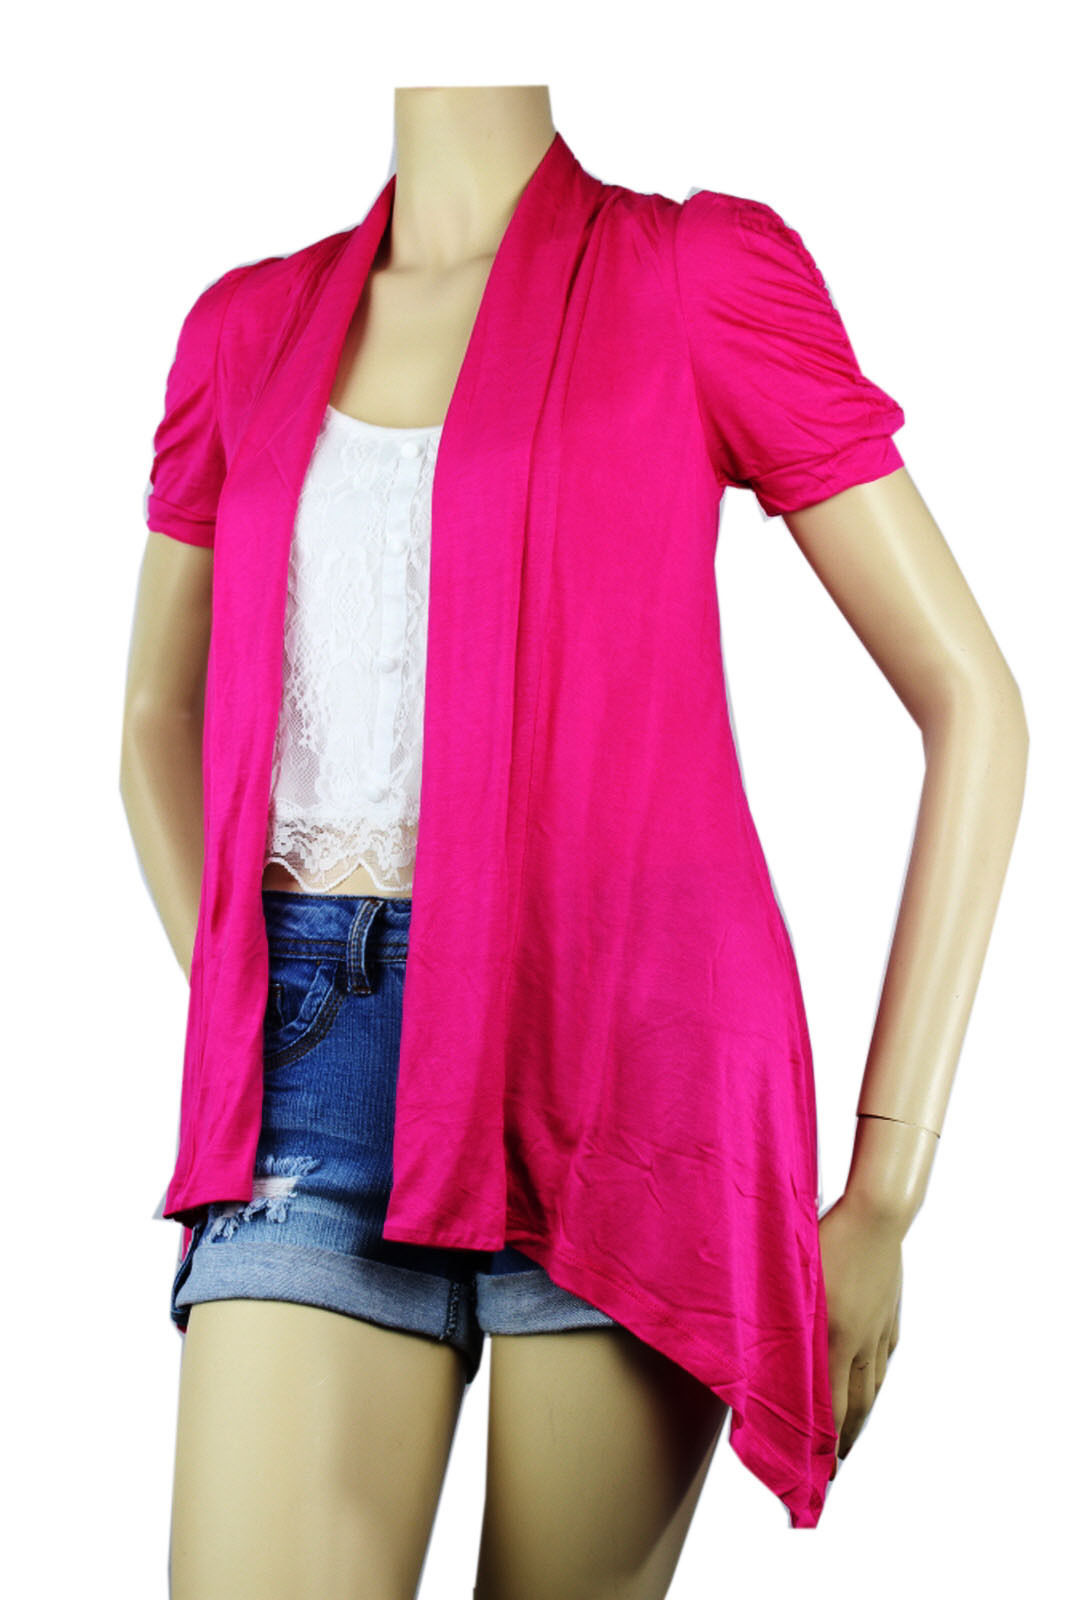 OPEN Layer Pleat Rayon CARDIGAN Top Loose Fit Short Slv Blouse Beach Shirt S-3XL